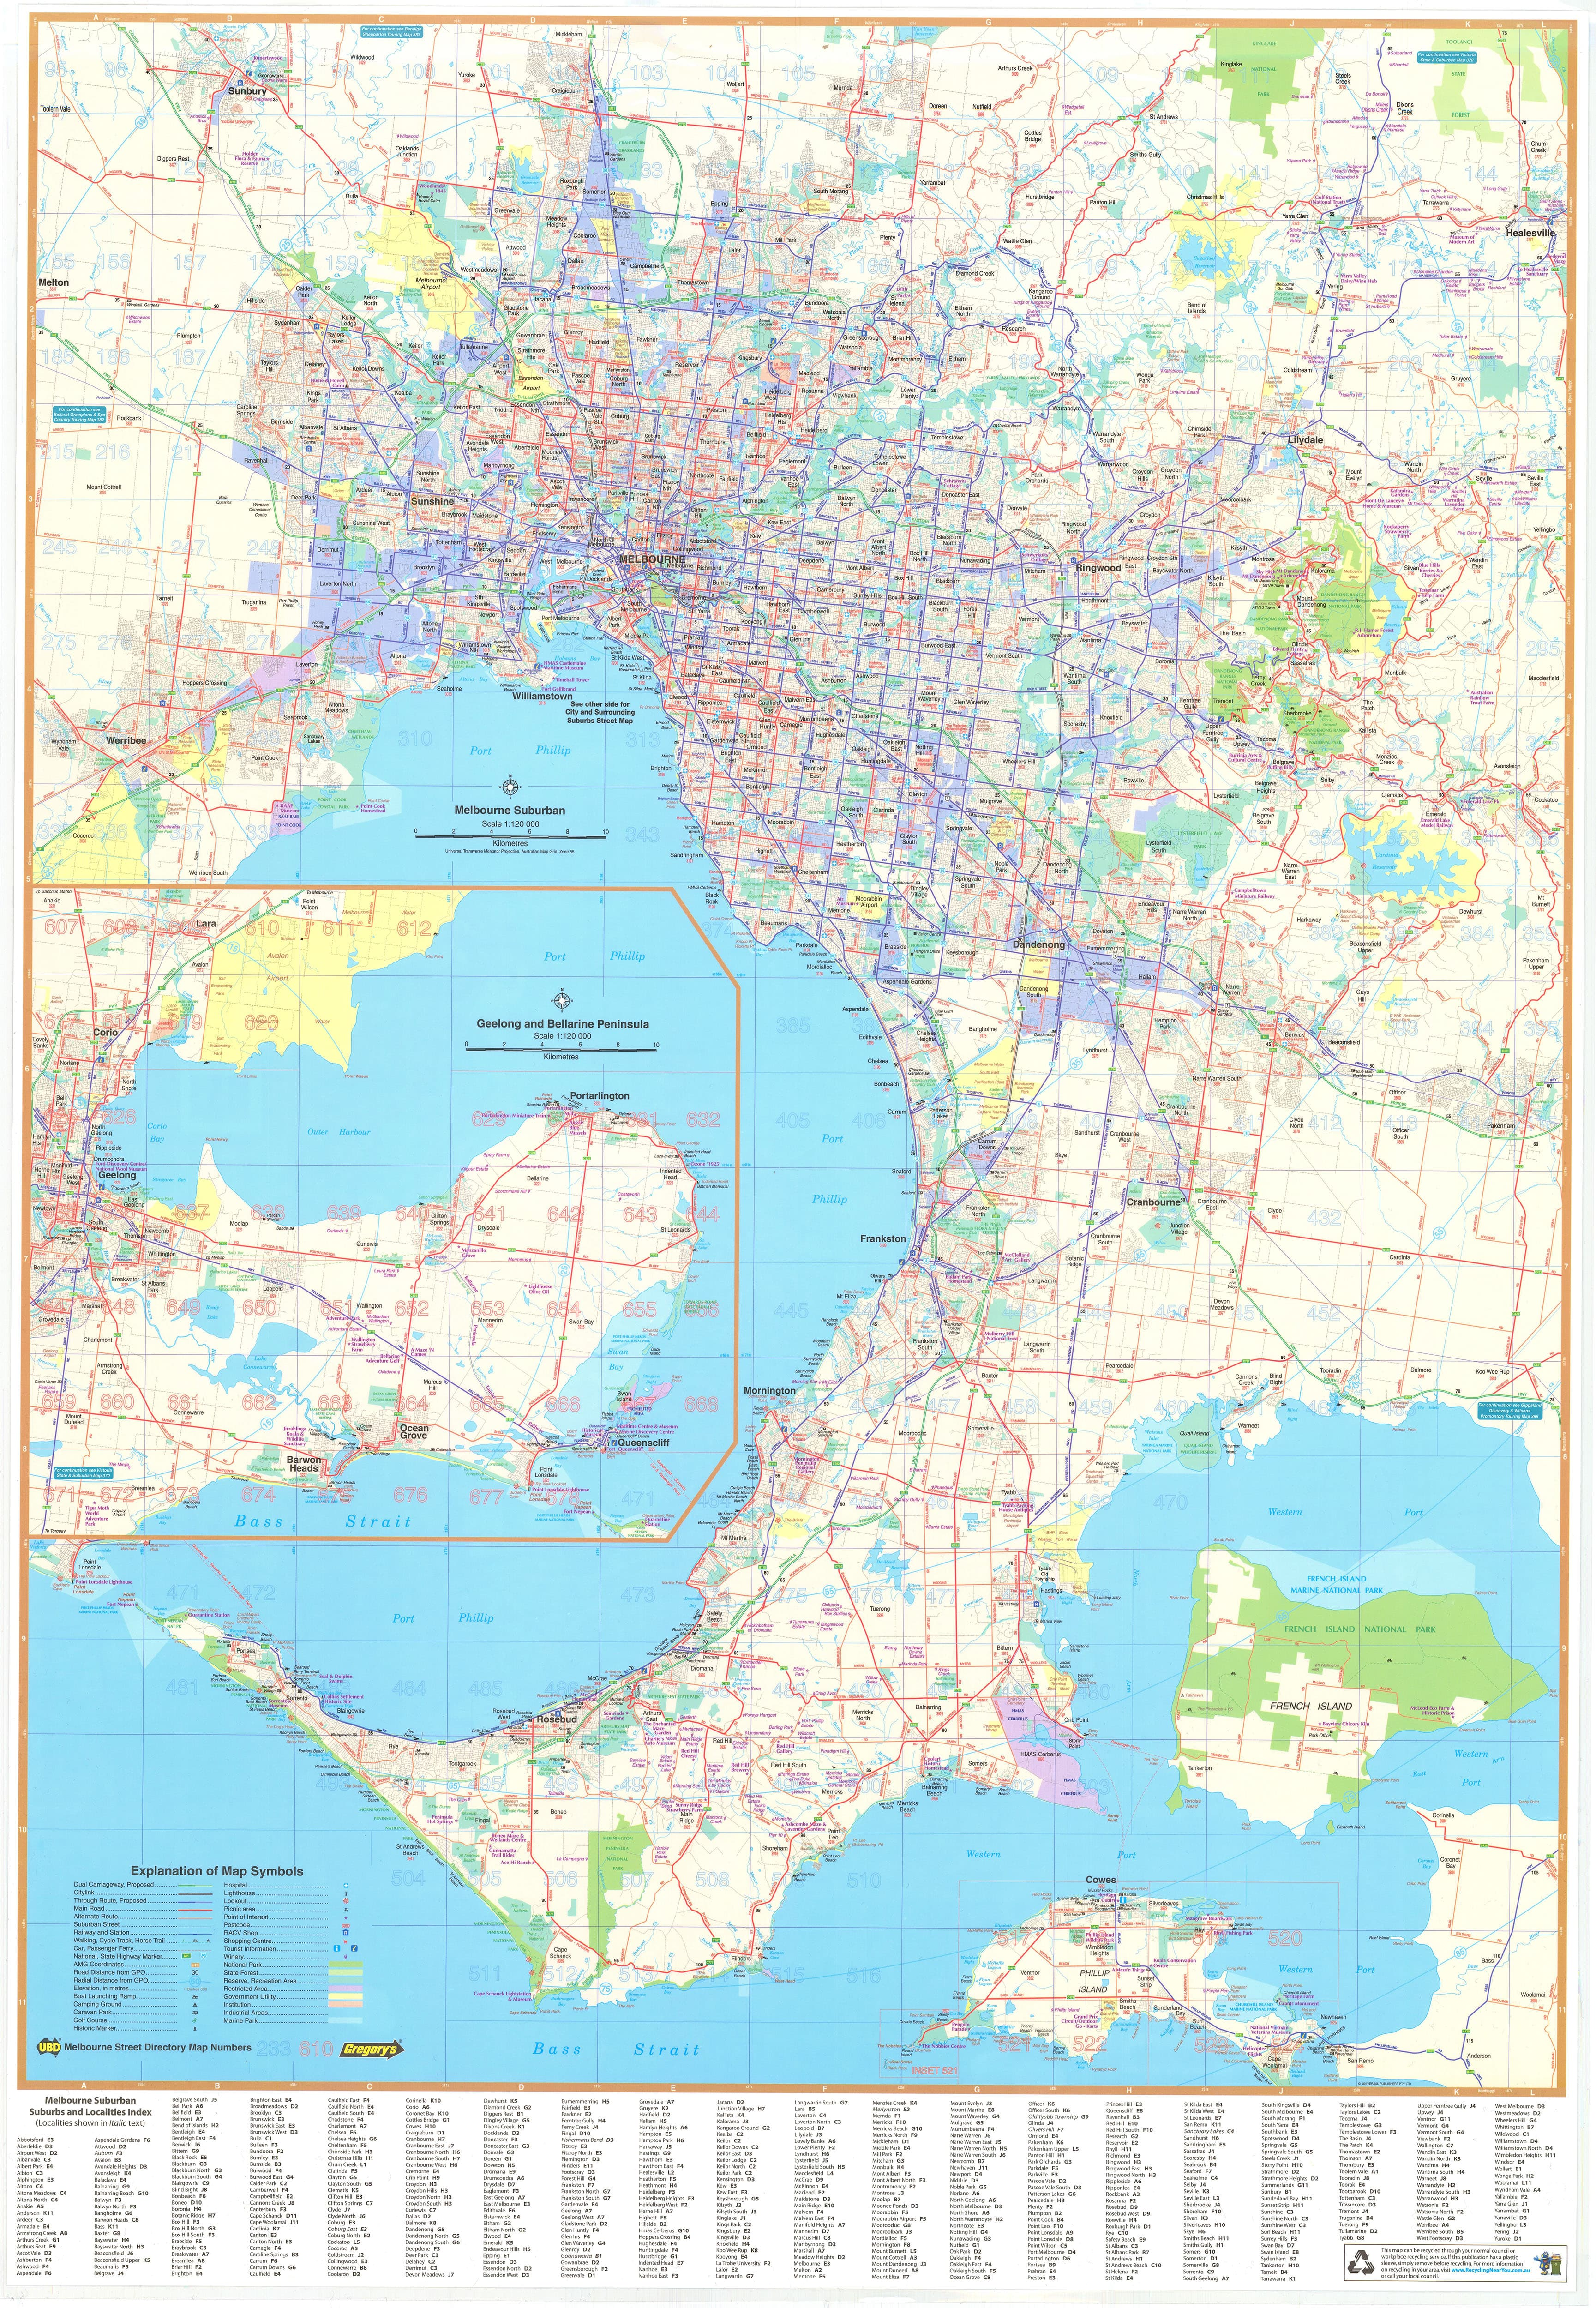 Buy Ubd Melbourne Wall Map Laminated Mapworld